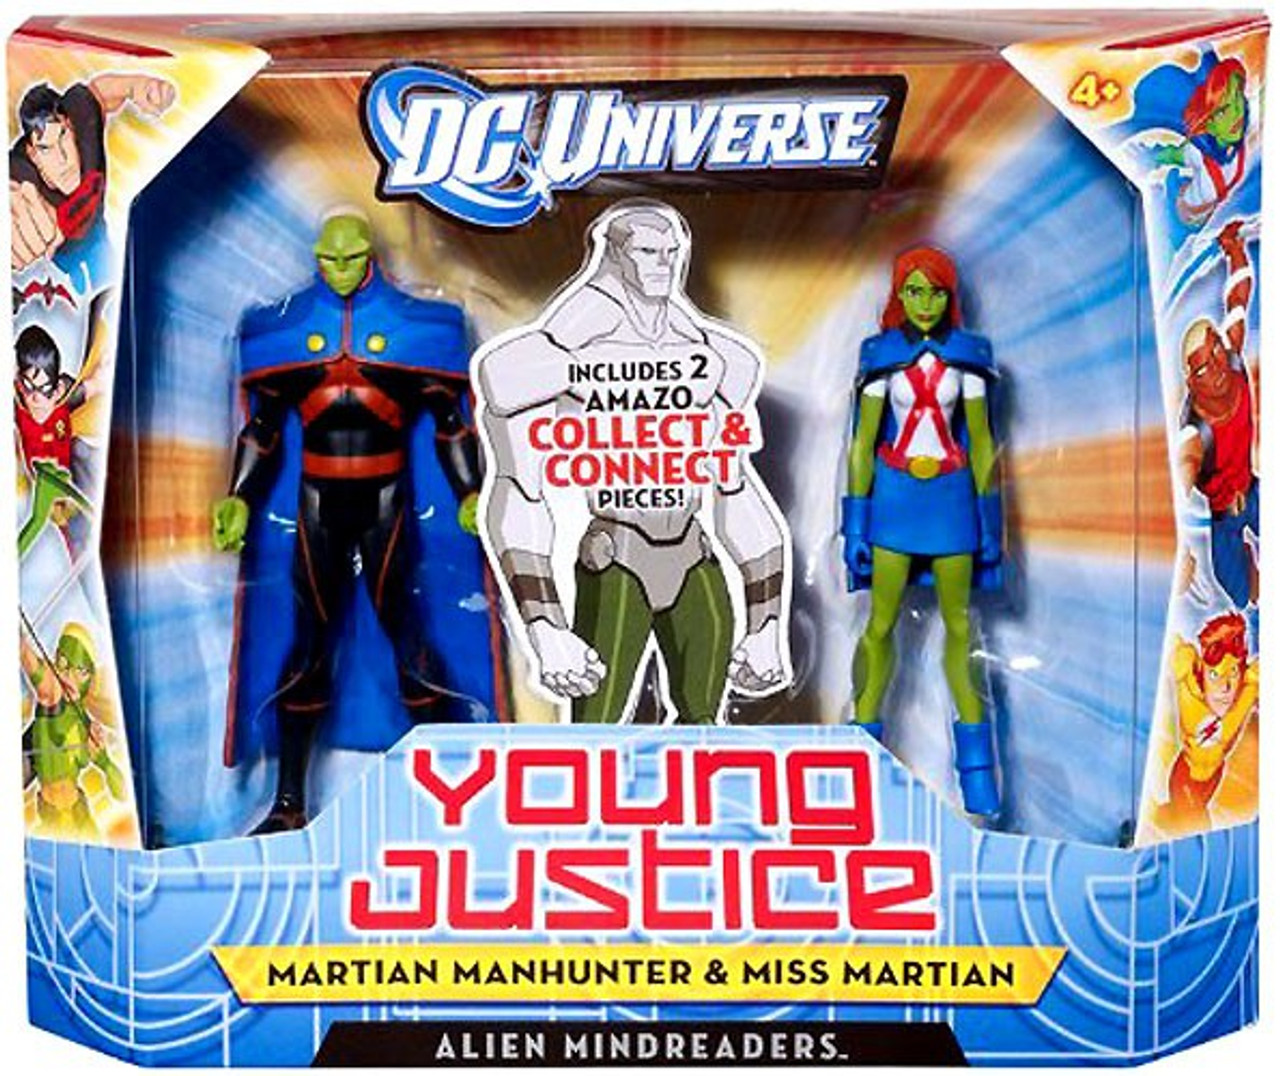 DC Universe Young Justice Martian Manhunter & Miss Martian Action Figure 2-Pack [Aliens Mindreaders]